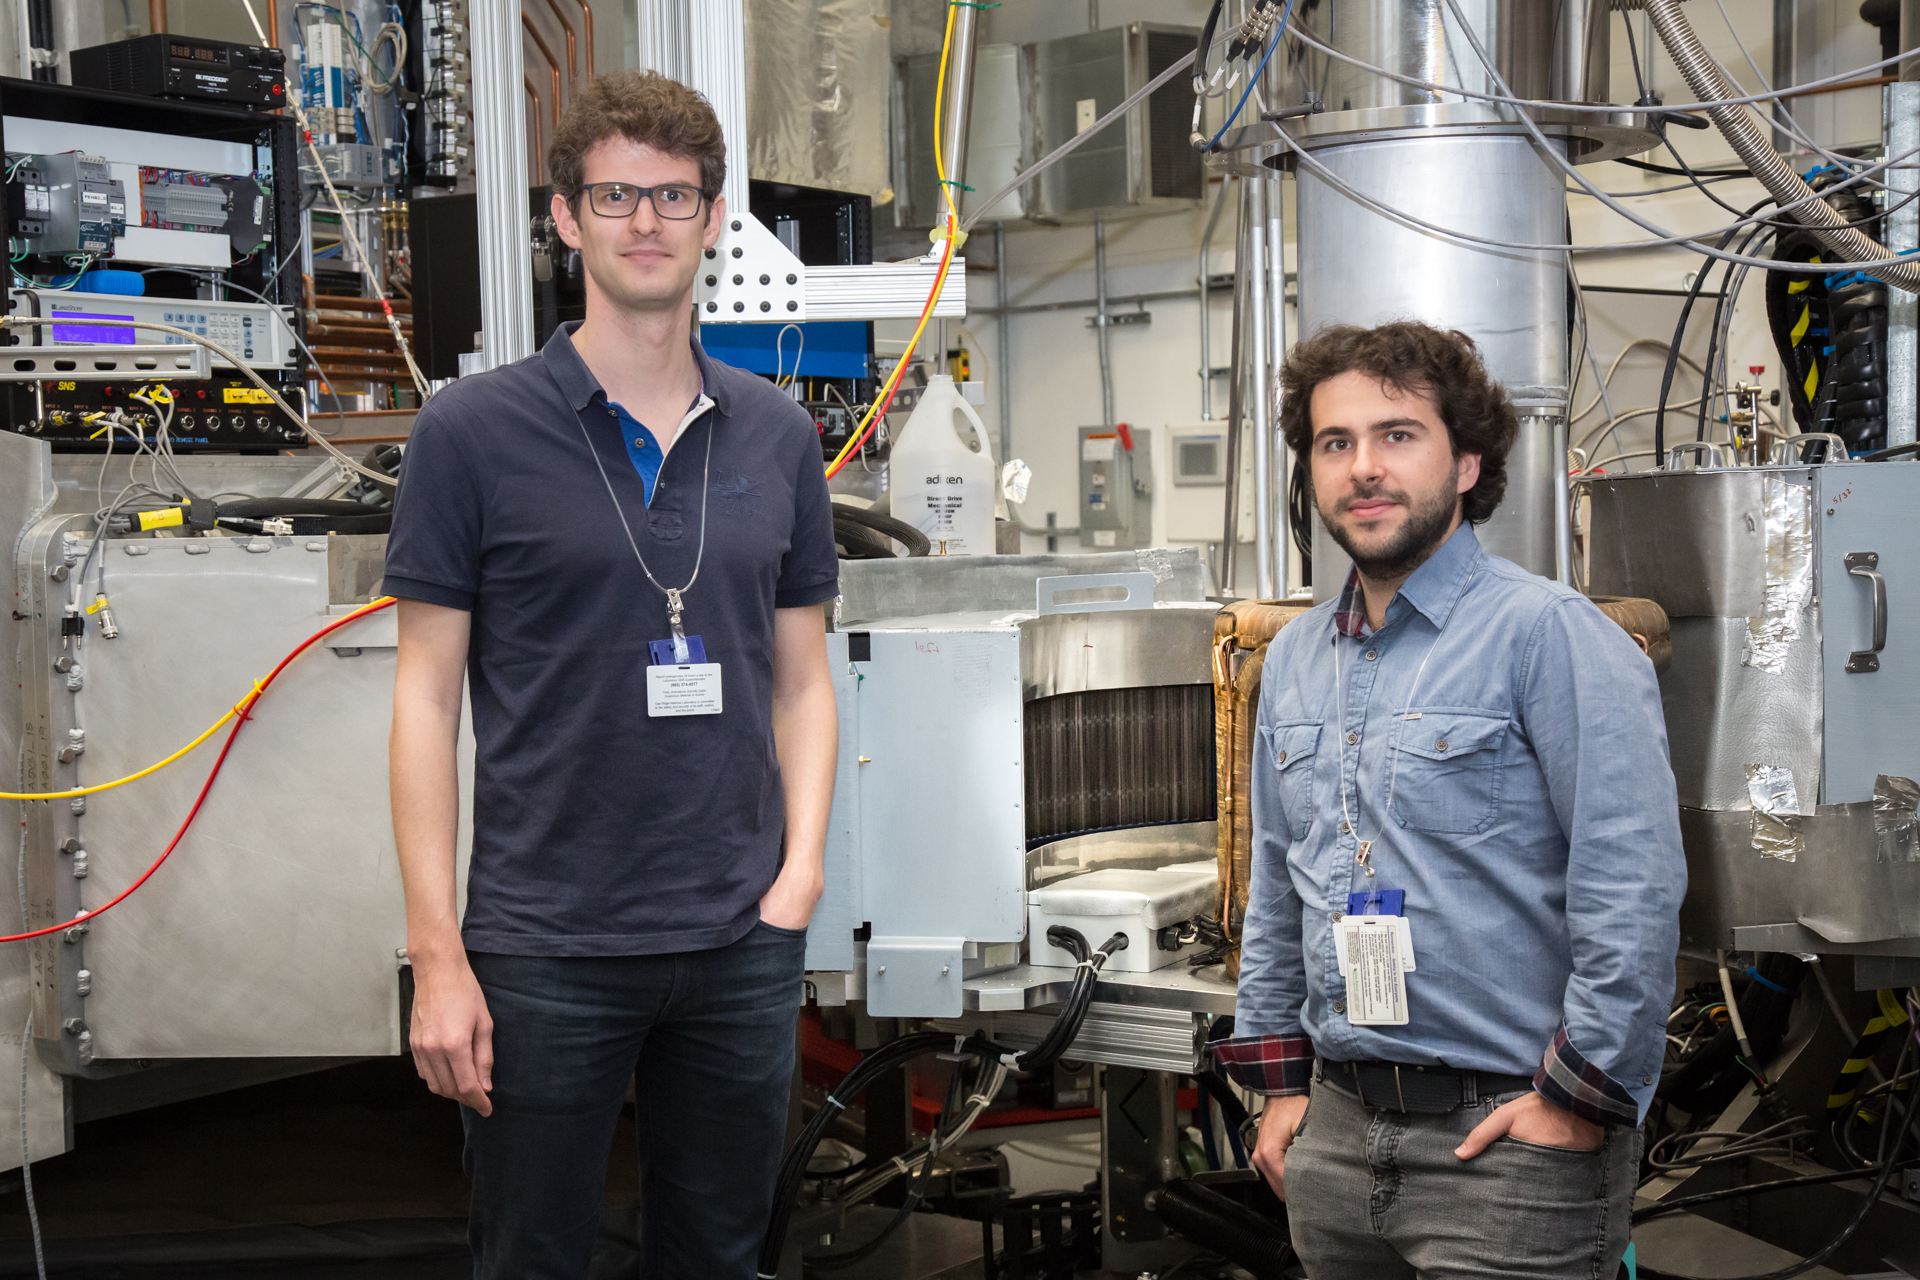 NUM researchers Romain Sibille (left) and Nicolas Gauthier at Oak Ridge National Laboratory (US), in front of the HYSPEC spectrometer, and its polarization analyser designed and built at PSI. The spectrometer has been instrumental in their study of the quantum spin ice Pr<sub>2</sub>Hf<sub>2</sub>O<sub>7</sub>.<br>(Image credit: ORNL/Genevieve Martin)